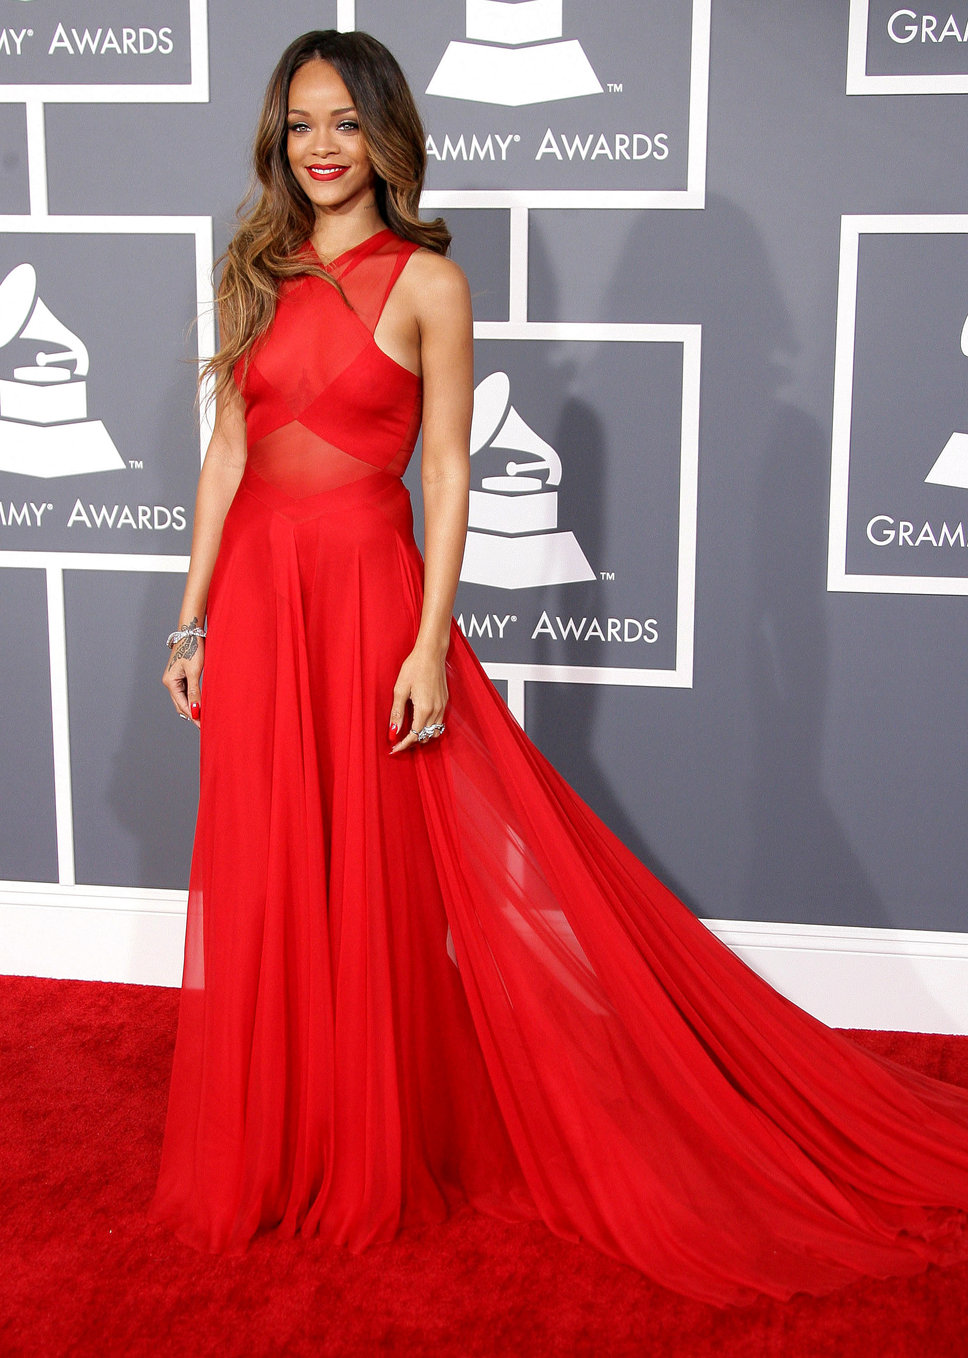 55th_annual_grammy_awards_arri.jpg